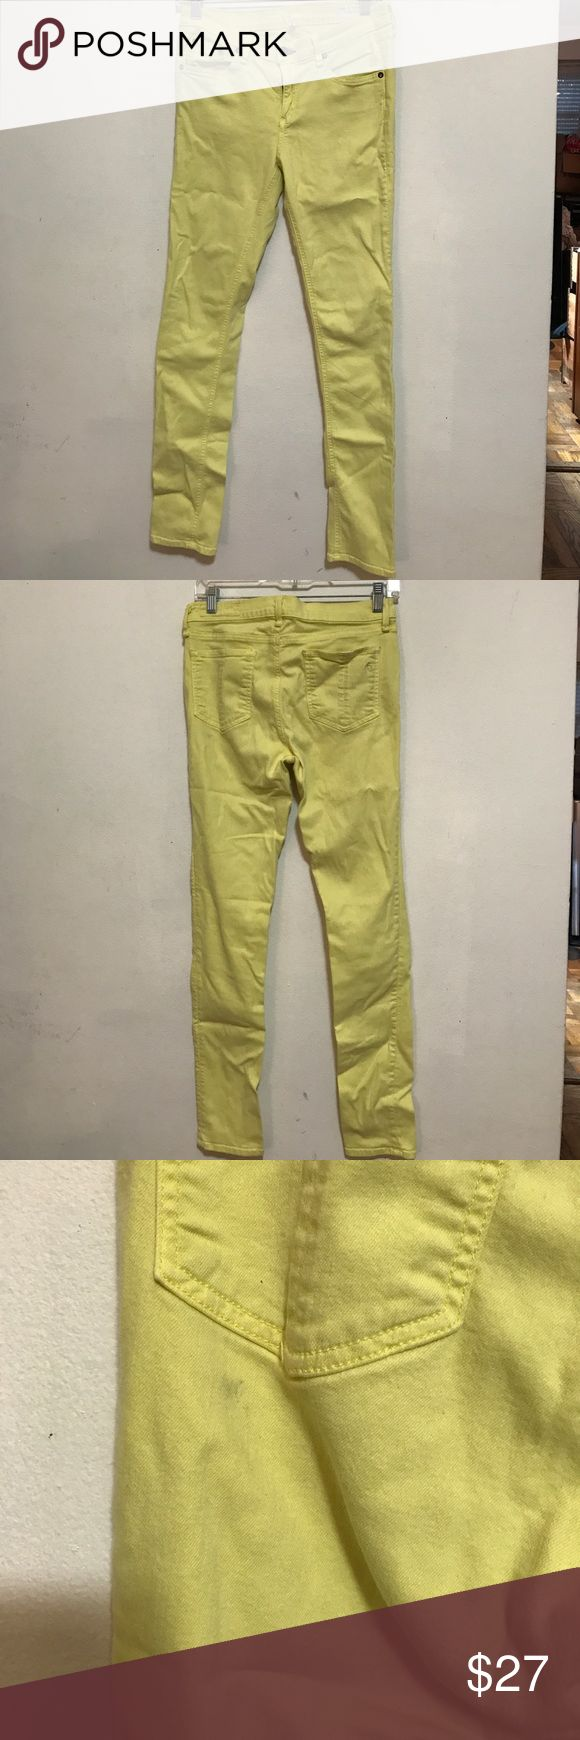 RAG AND BONE YELLOW SKINNY JEANS Rag and Bone yellow skinny jeans. Zip fly with 5 pockets. Size 29. 29 in inseam approx. little less than 9 inch rise. Cotton, tencel, spandex blend. Some wear, but cleanable rag & bone Jeans Skinny